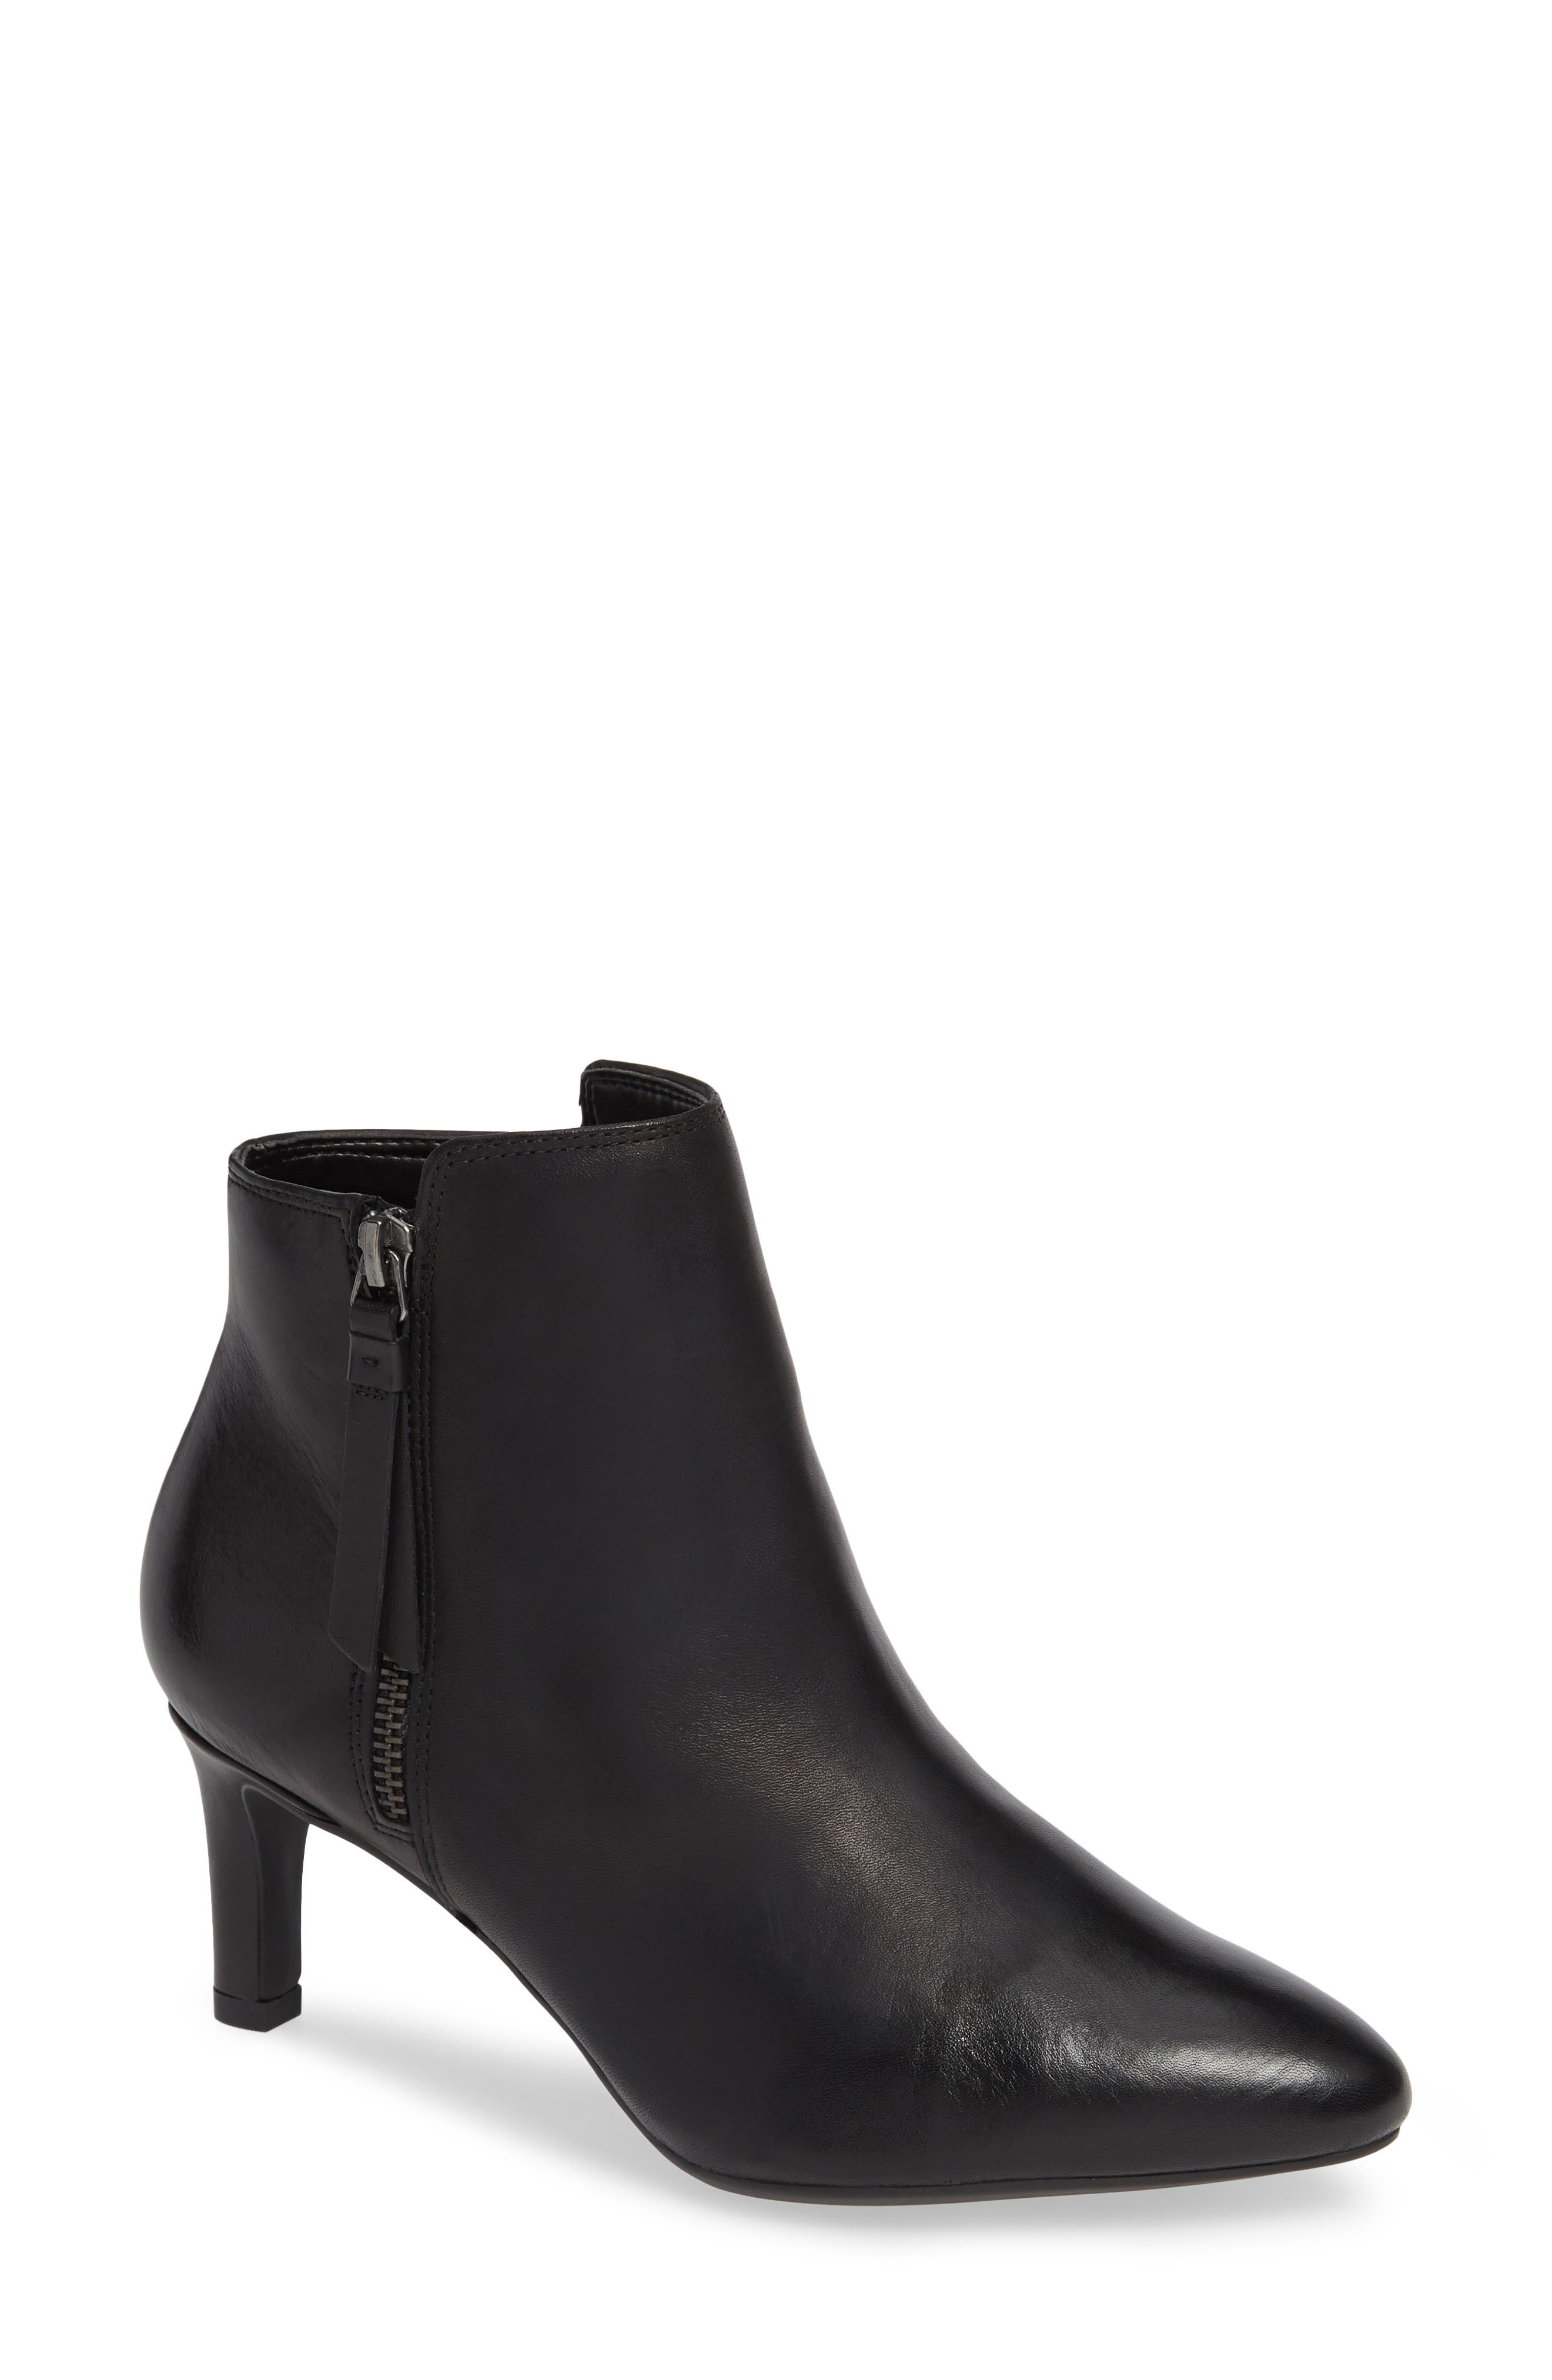 Calla Blossom Bootie,                             Main thumbnail 1, color,                             BLACK LEATHER